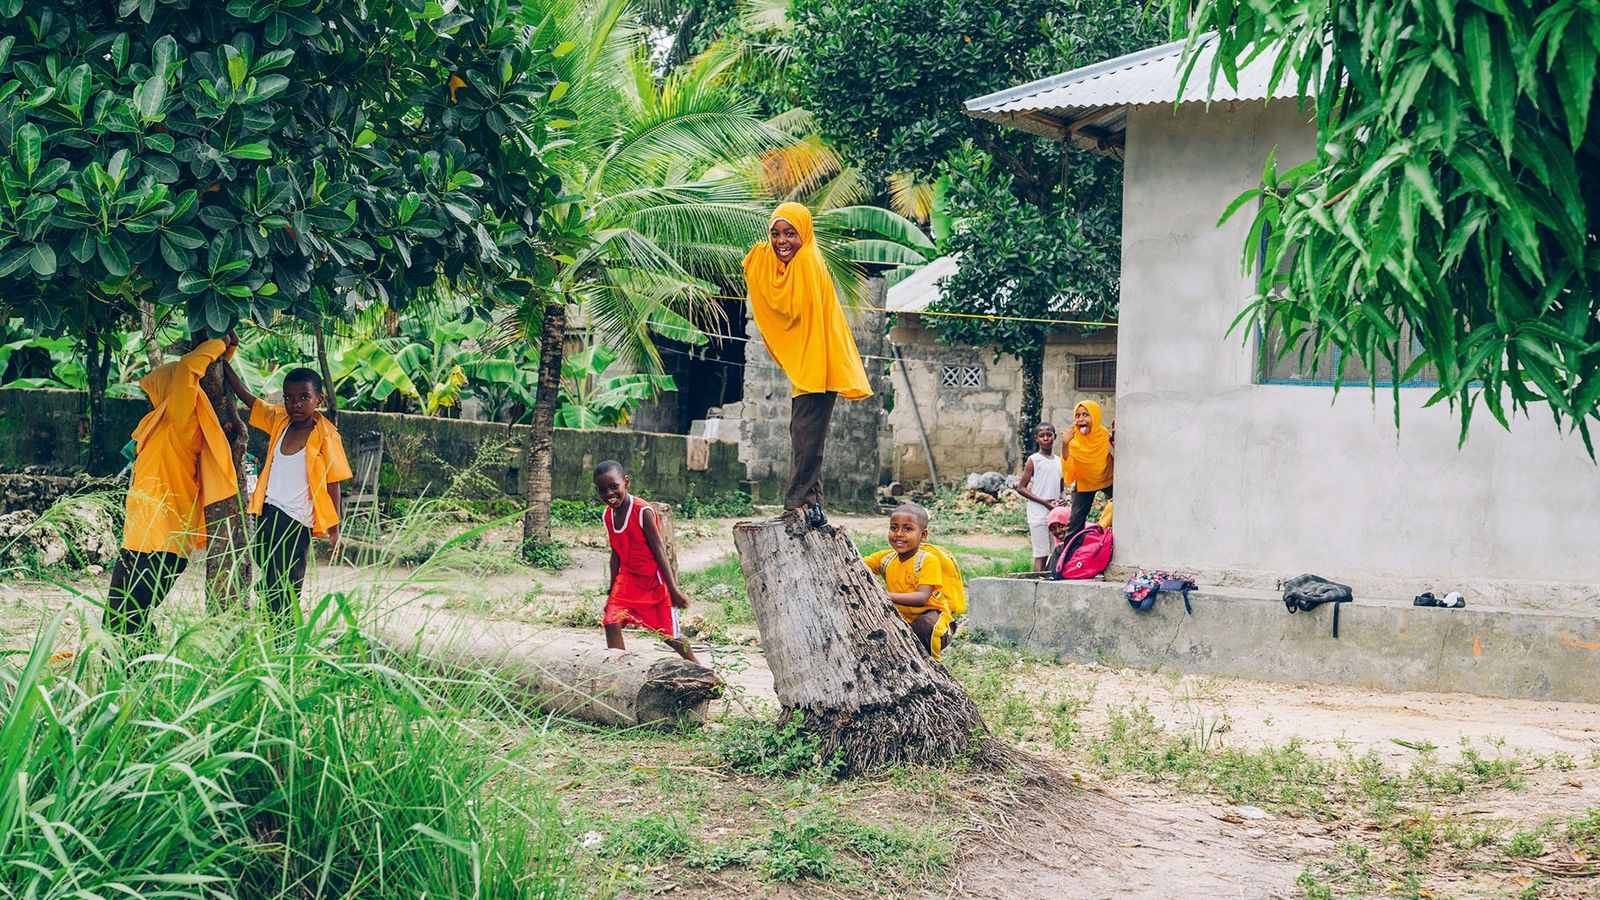 Children, some in their uniforms, playing outside after school, Pemba.